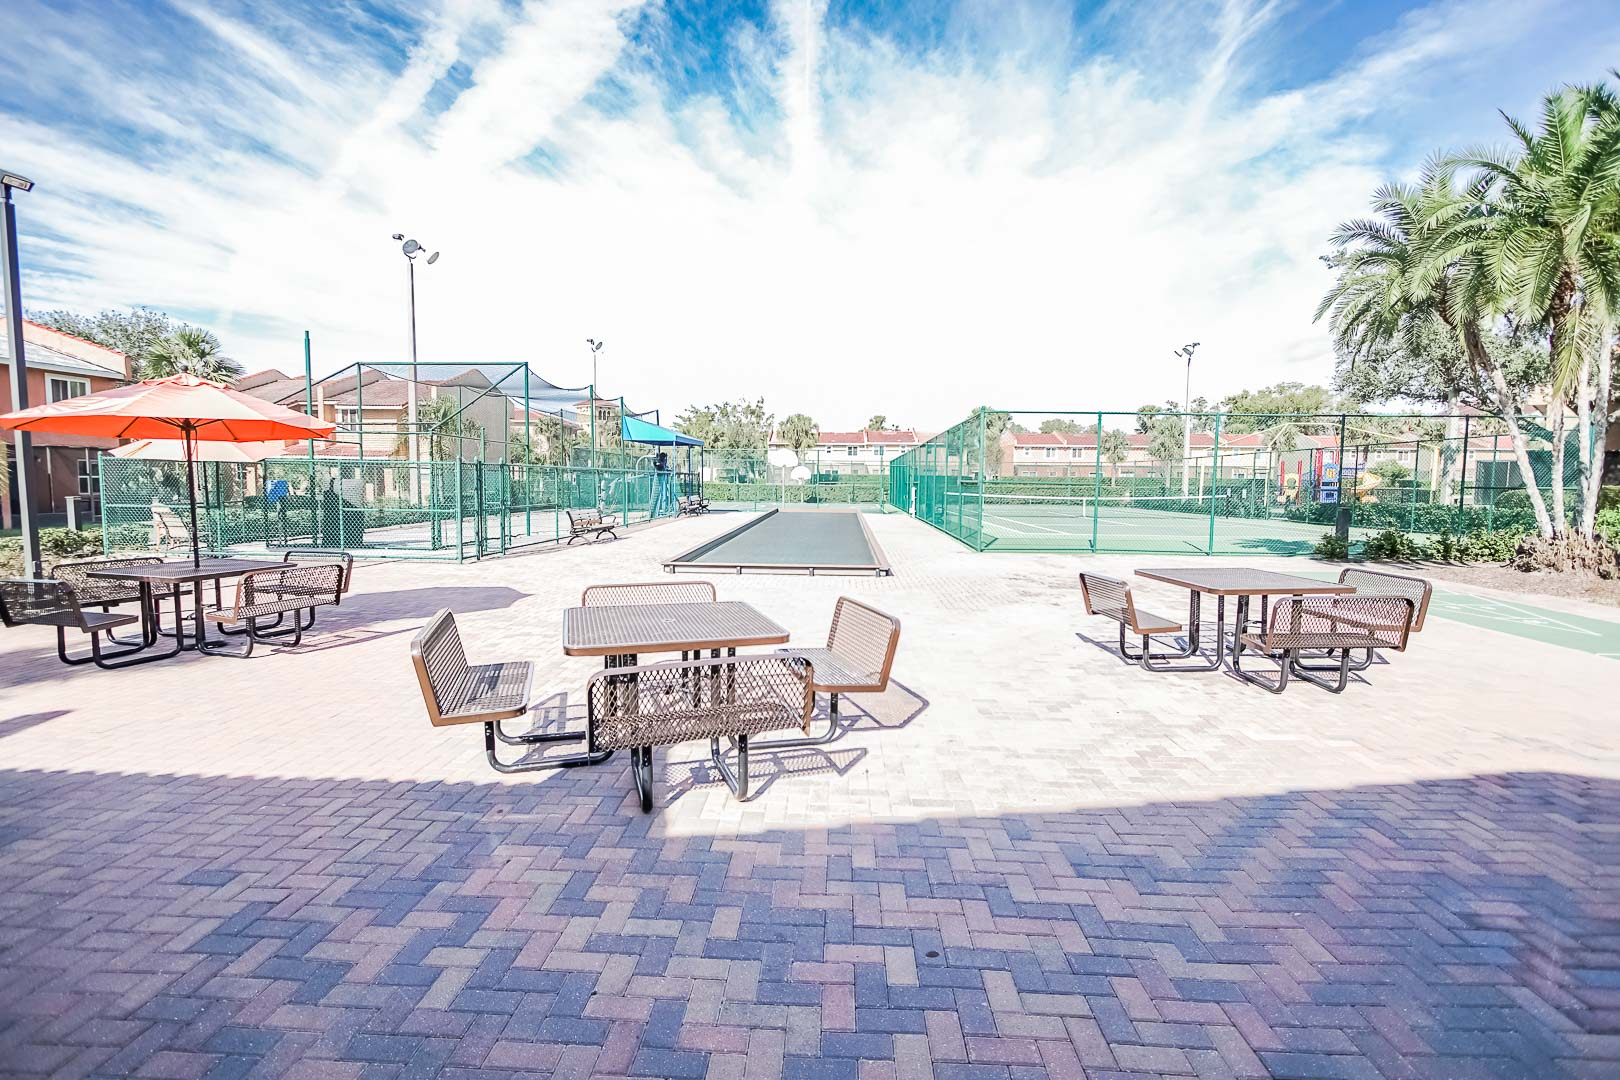 An airy view of the tennis courts and seating area at VRI's Fantasy World Resort in Florida.